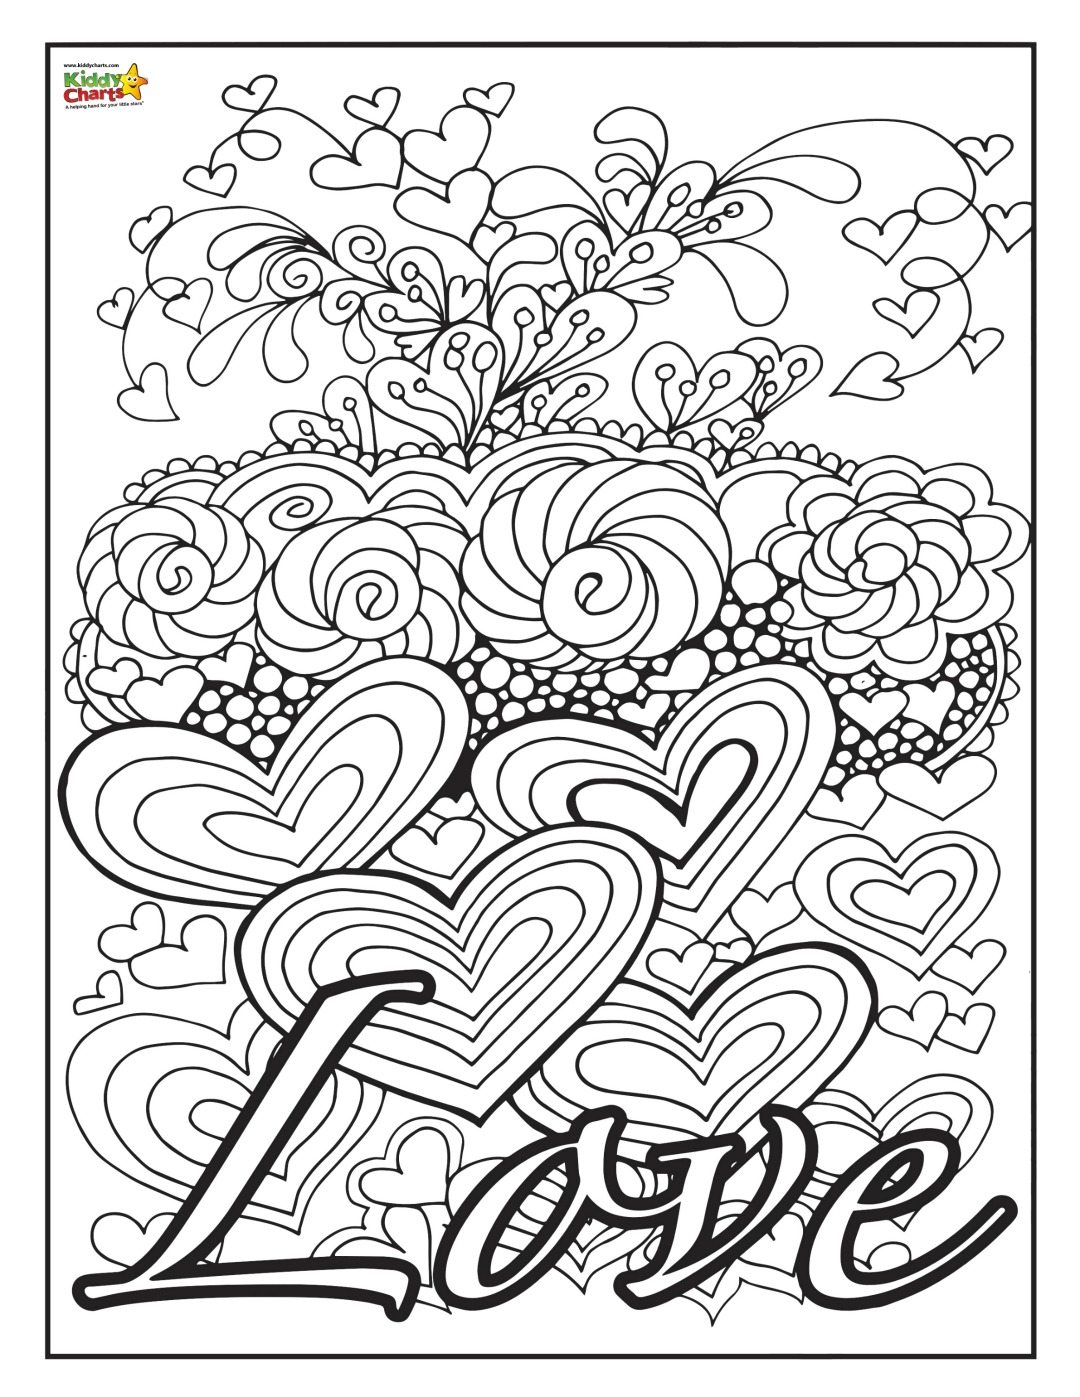 Love kids coloring page